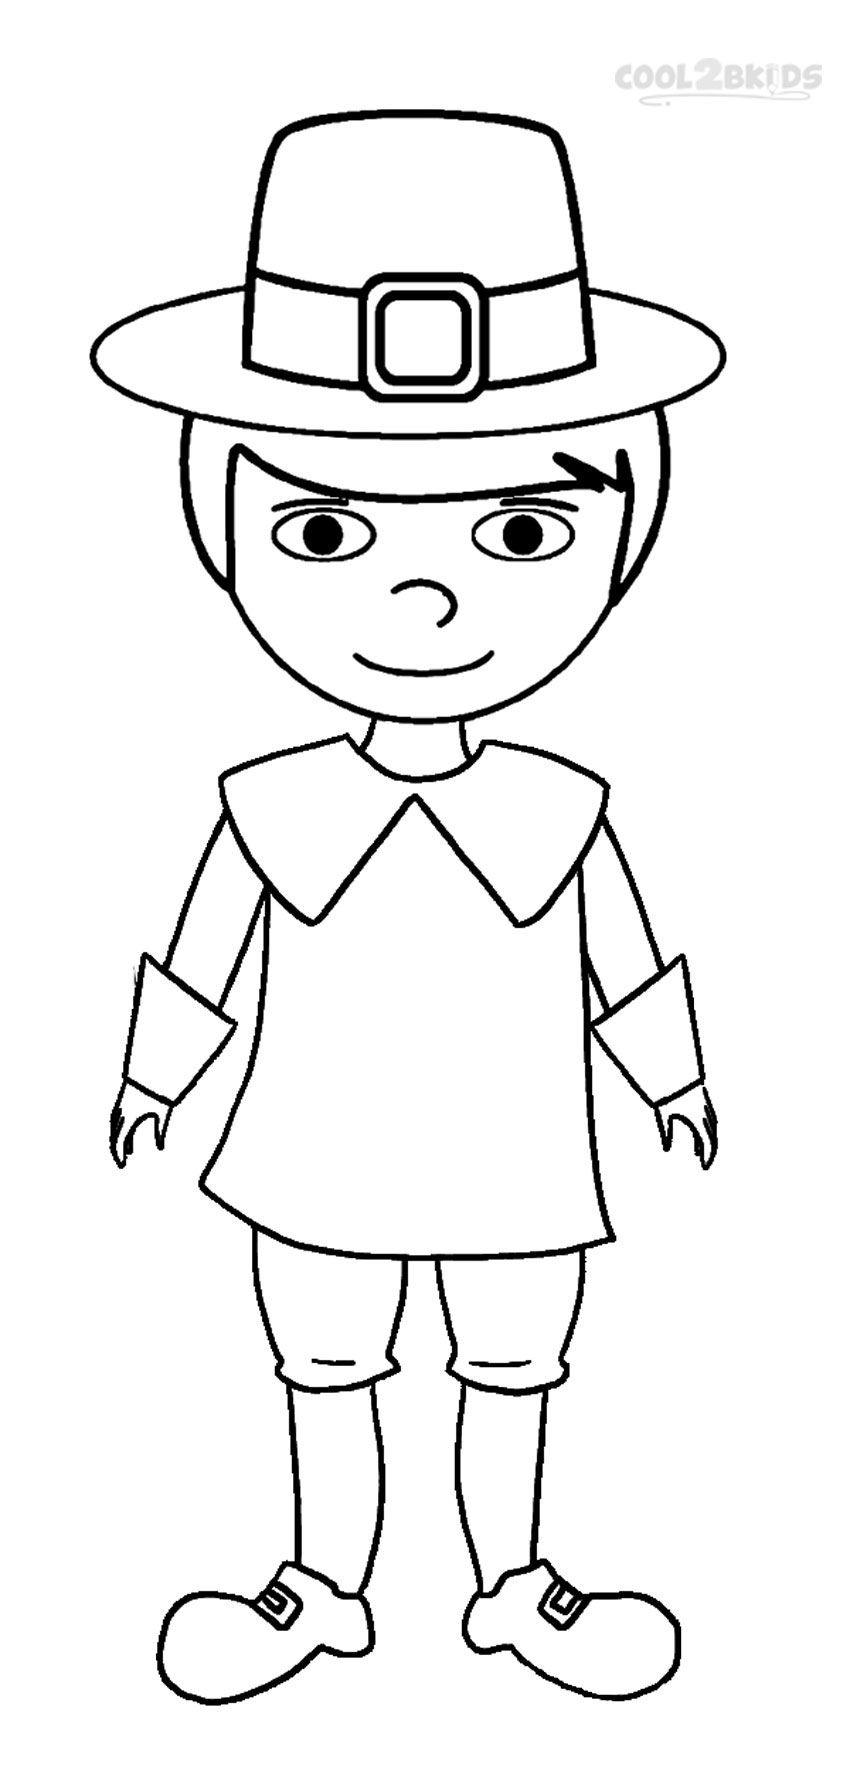 pilgrim boy and girl coloring pages pilgrim drawing at getdrawings free download pages pilgrim coloring boy girl and